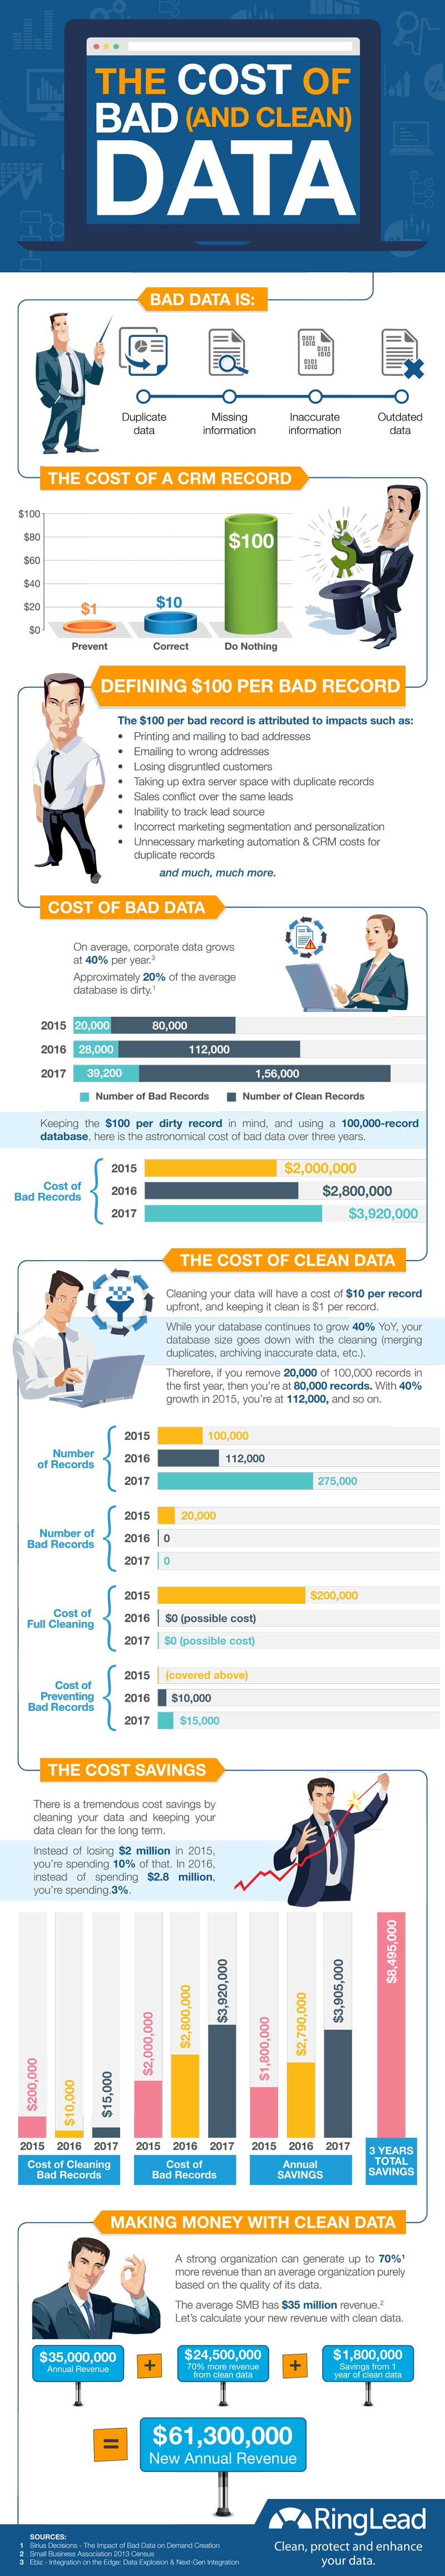 RingLead - The Cost of Bad Data Infographic